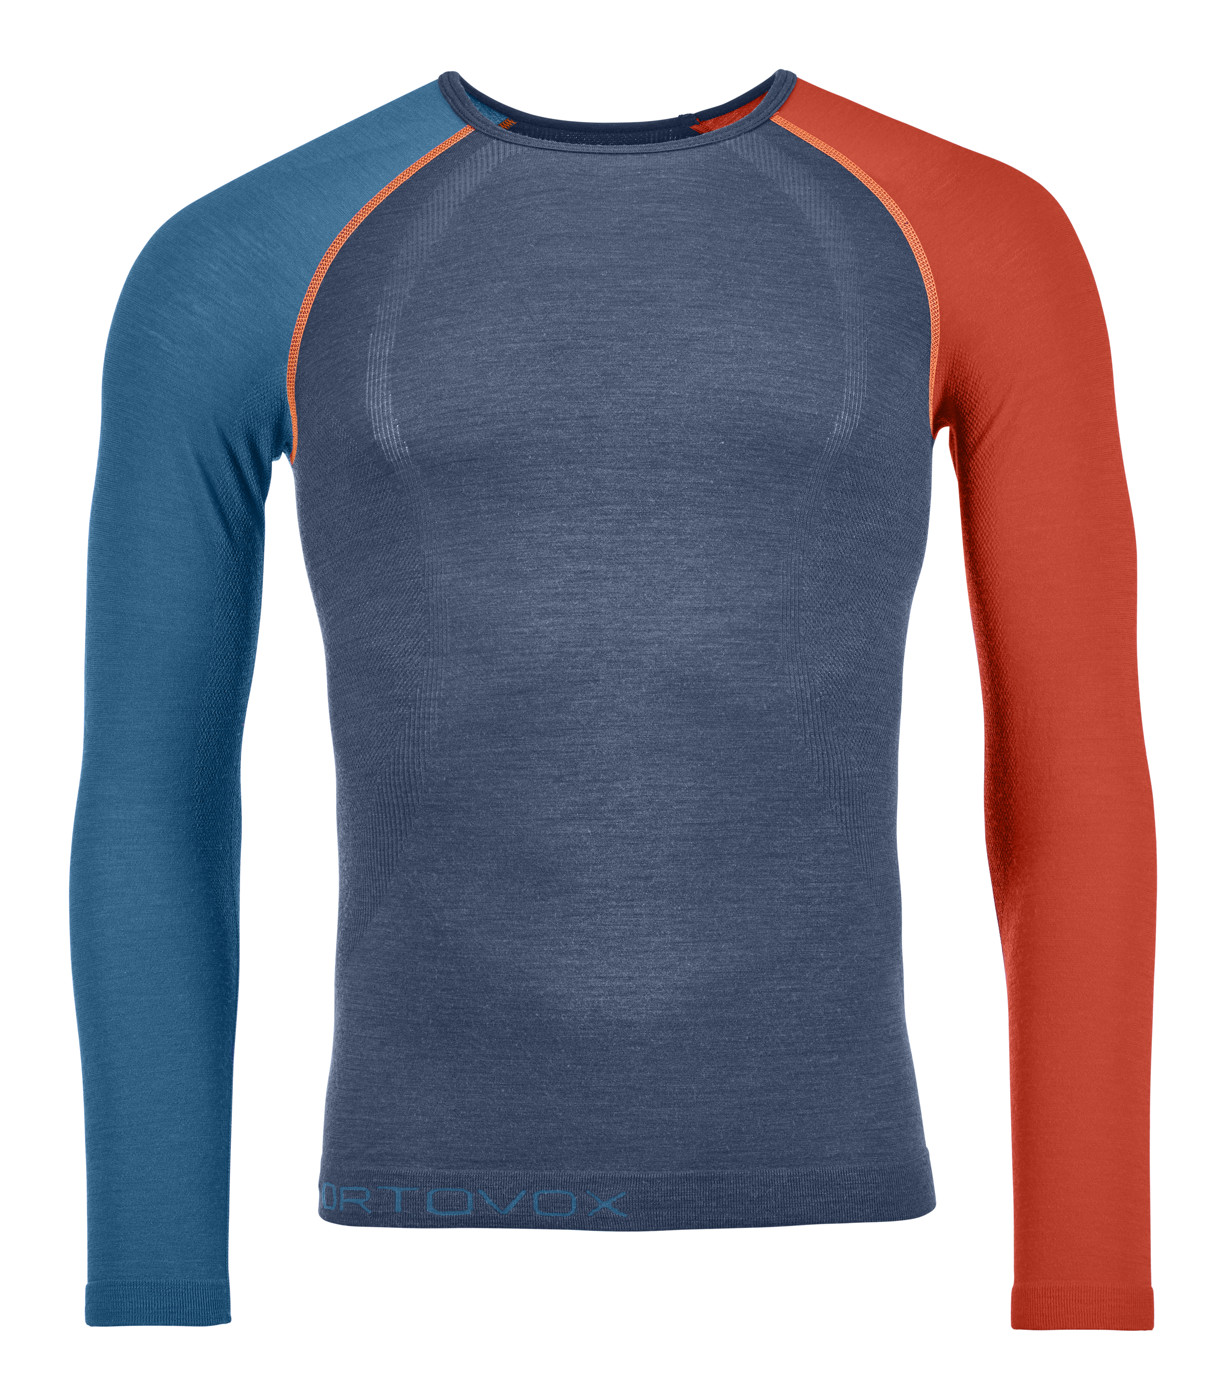 ORTOVOX 120 COMP LIGHT LONG SLEEVE M - Herren